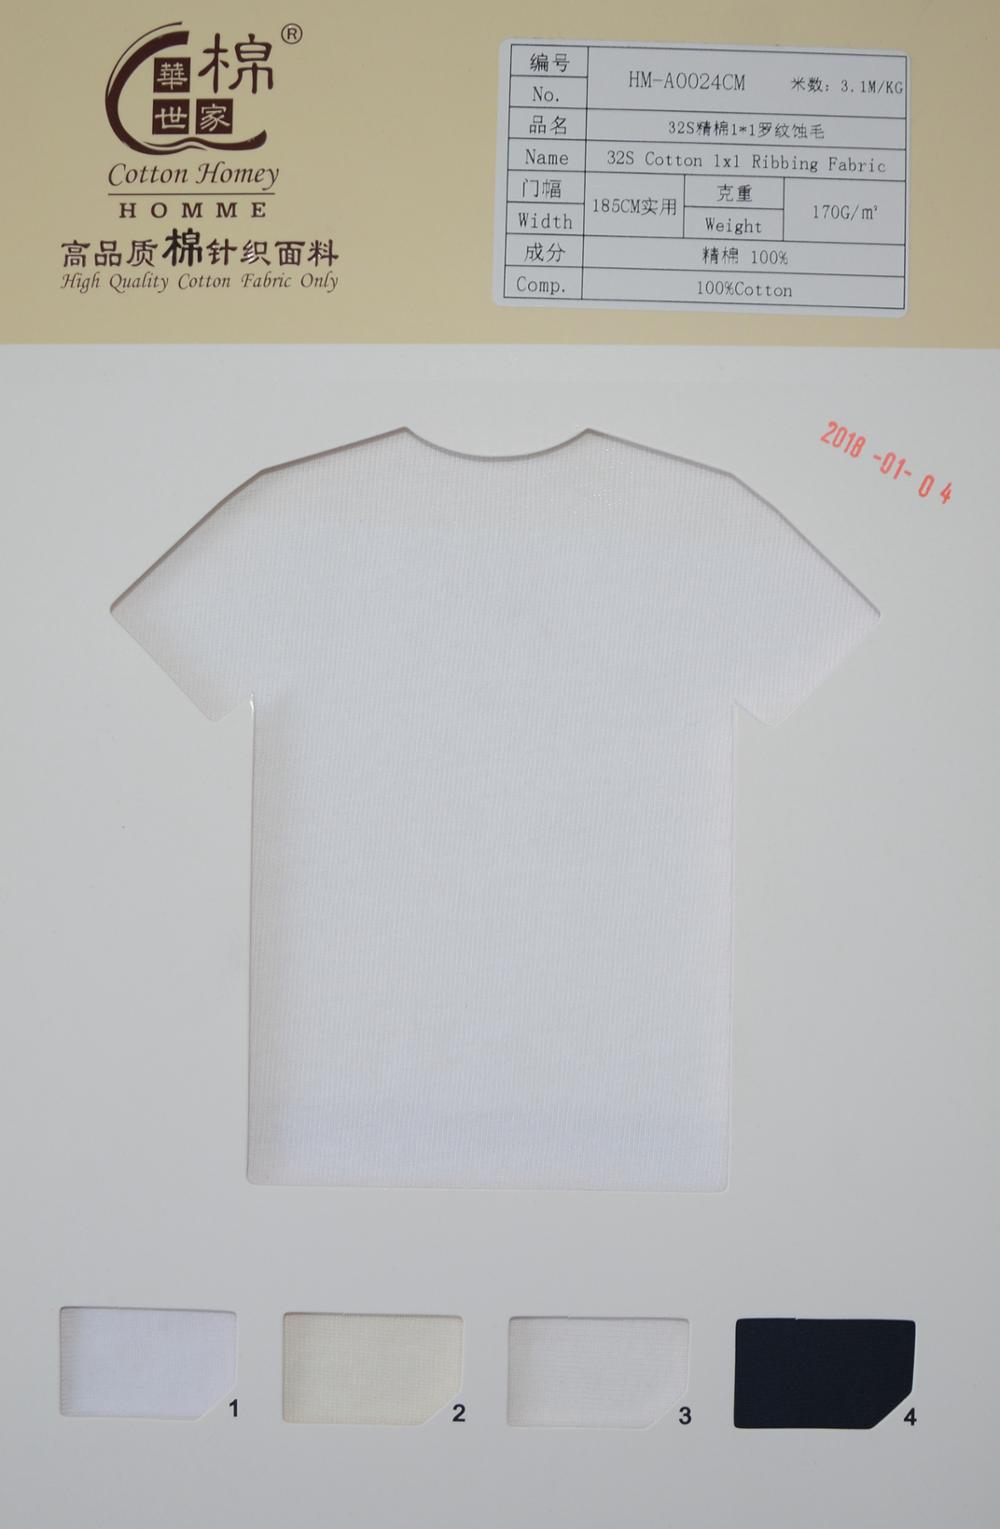 China high quality wholesale T shirt Materials smooth knit 32S 1x1 cotton rib fabric for collar fabric cotton for underwear